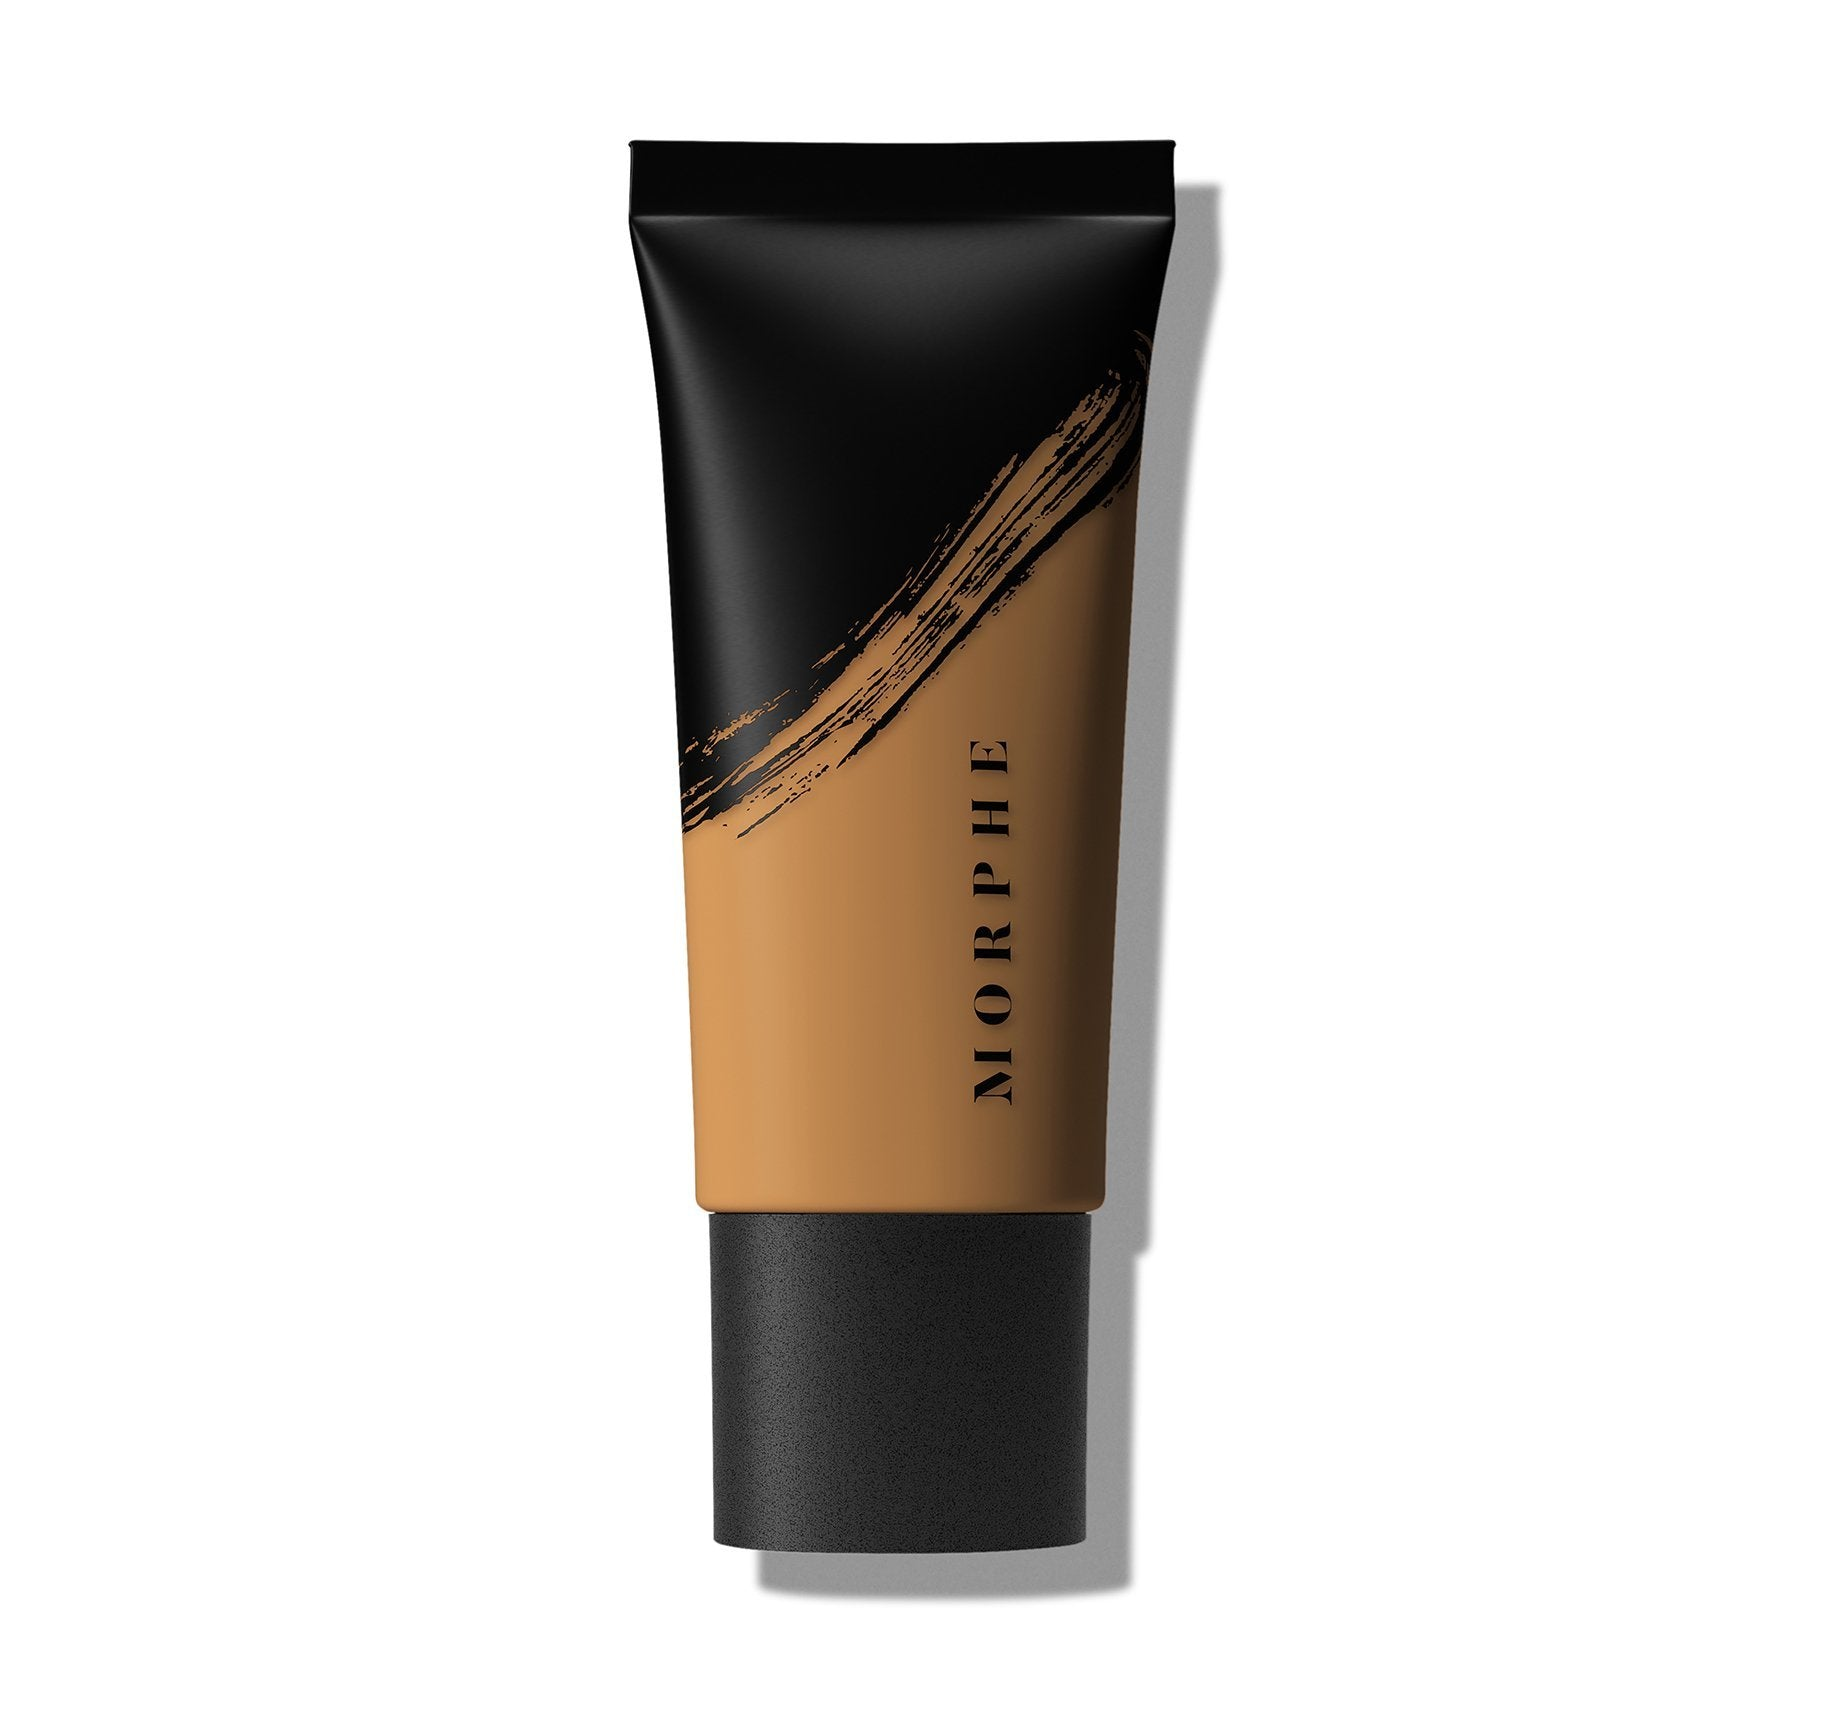 FLUIDITY FULL-COVERAGE FOUNDATION - F3.20, view larger image